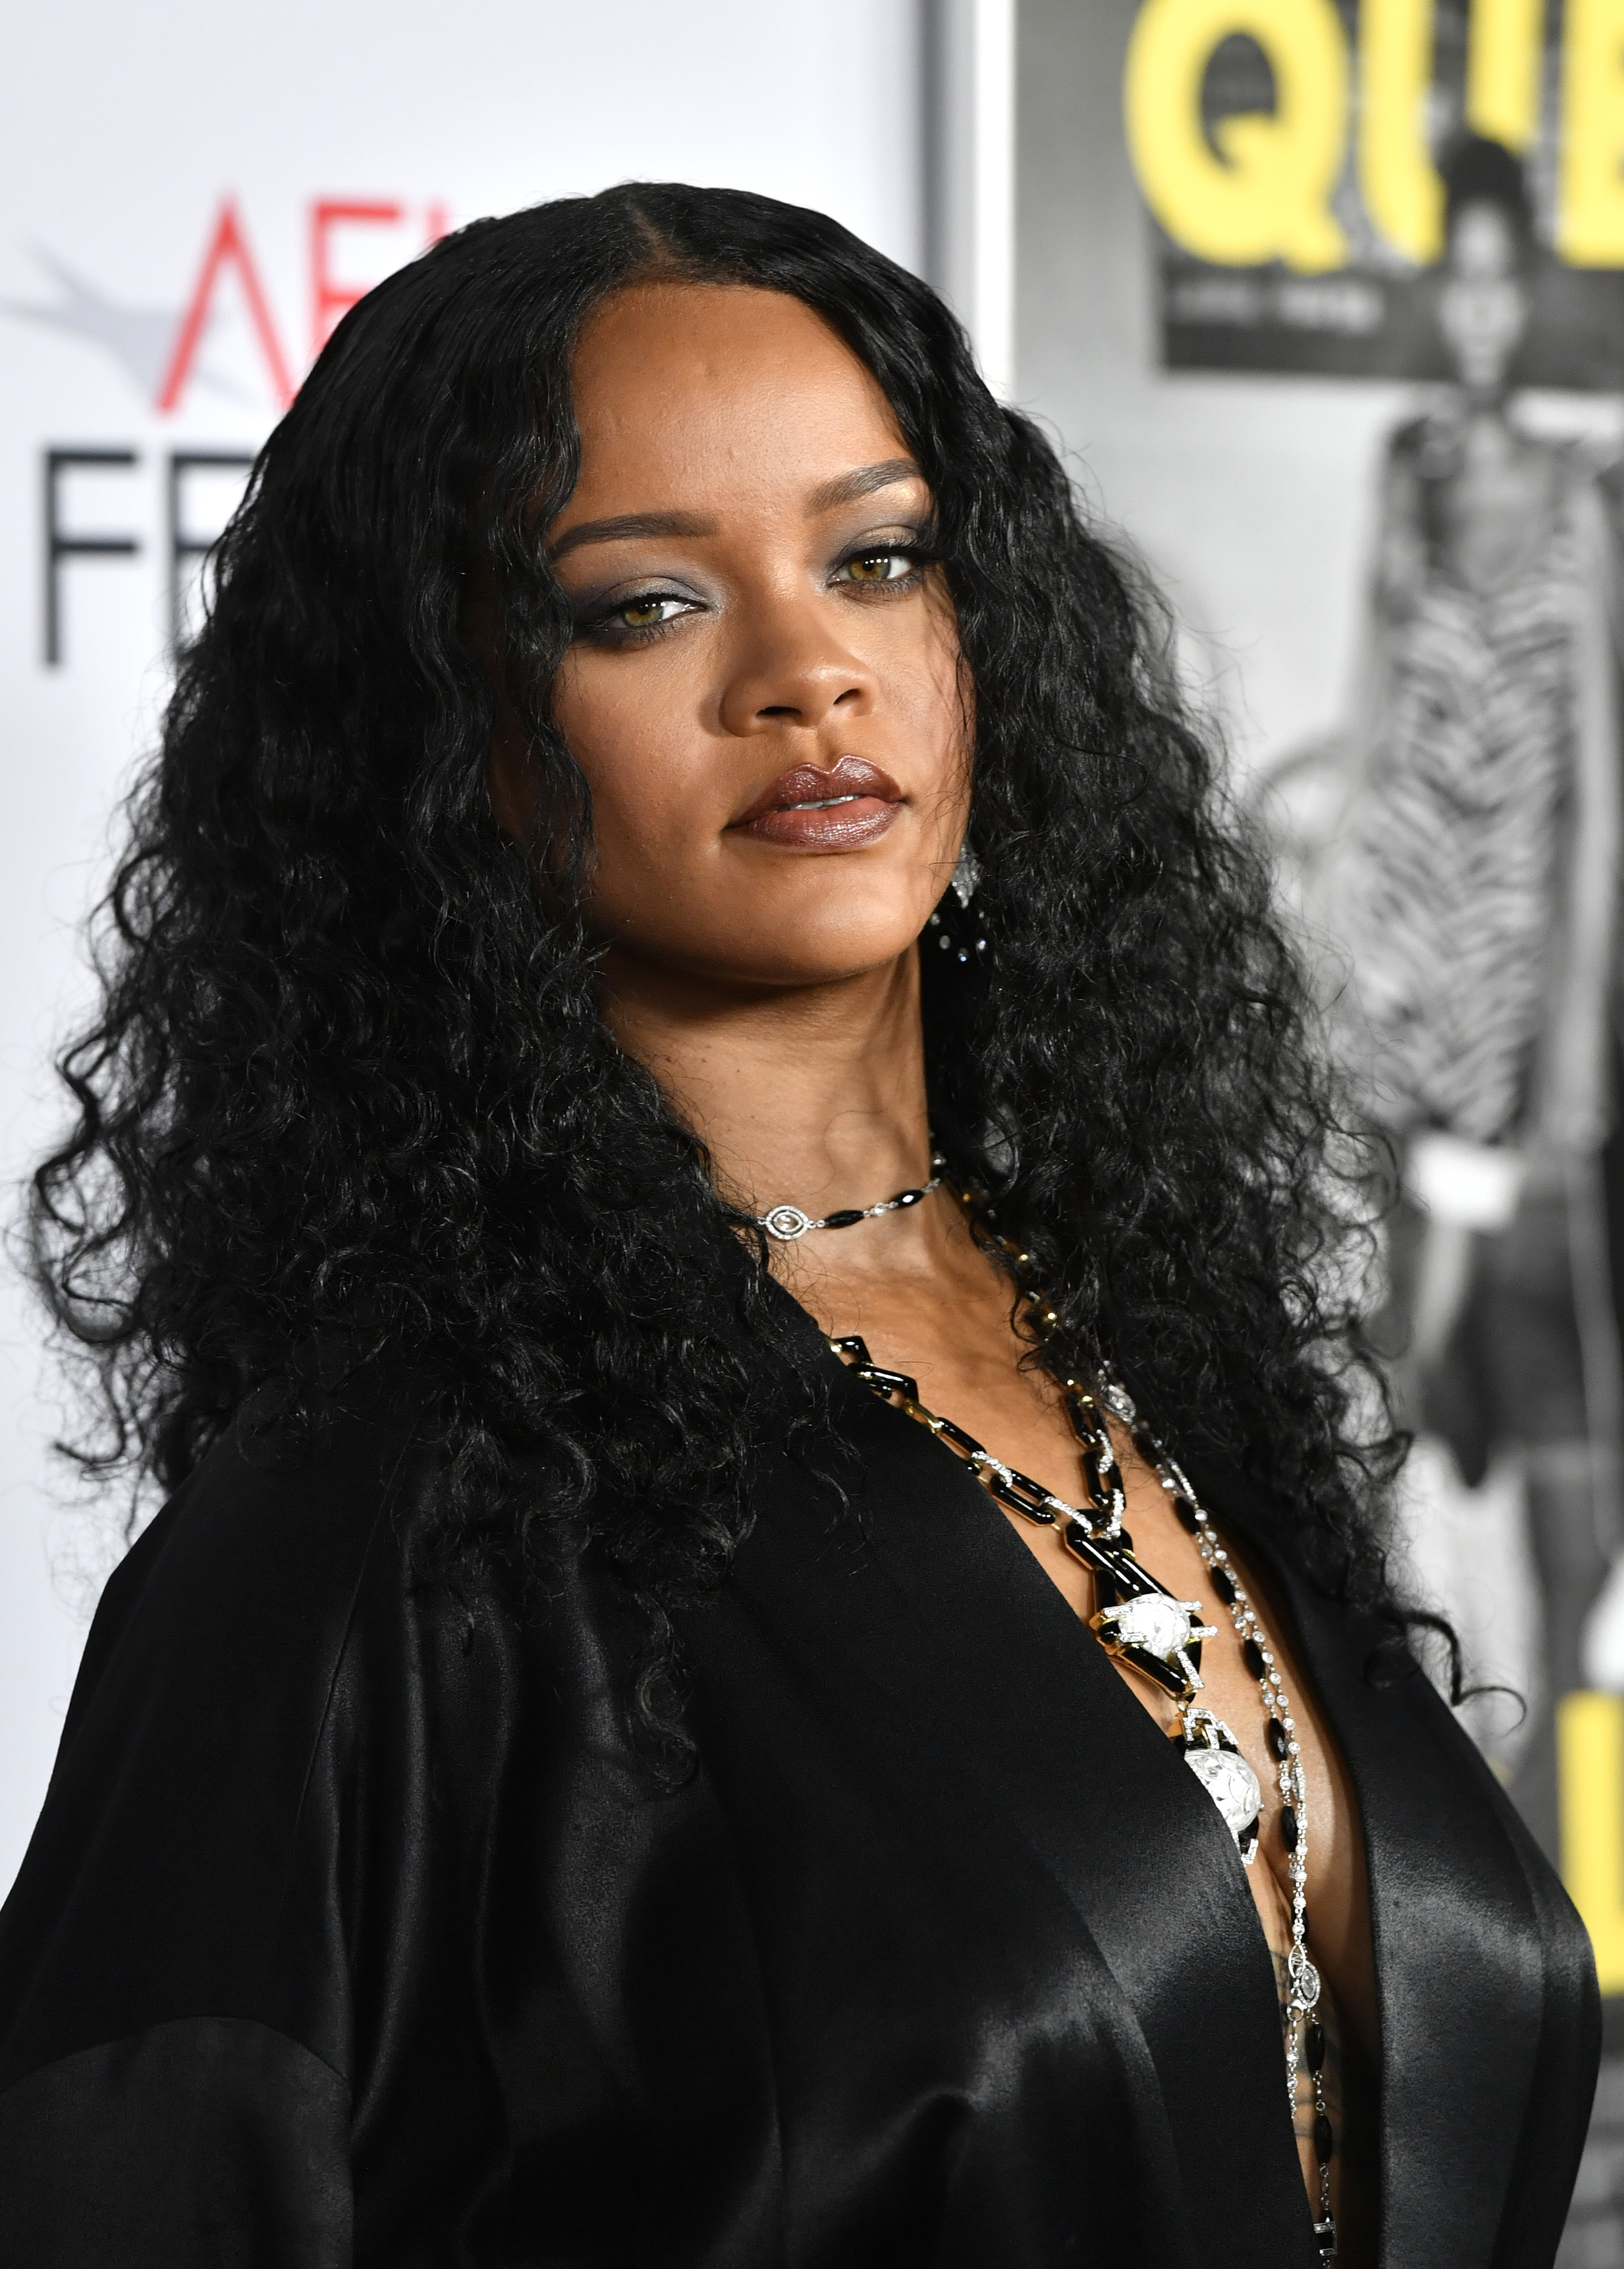 Rihanna and Hassan Jameel break up after dating for three years